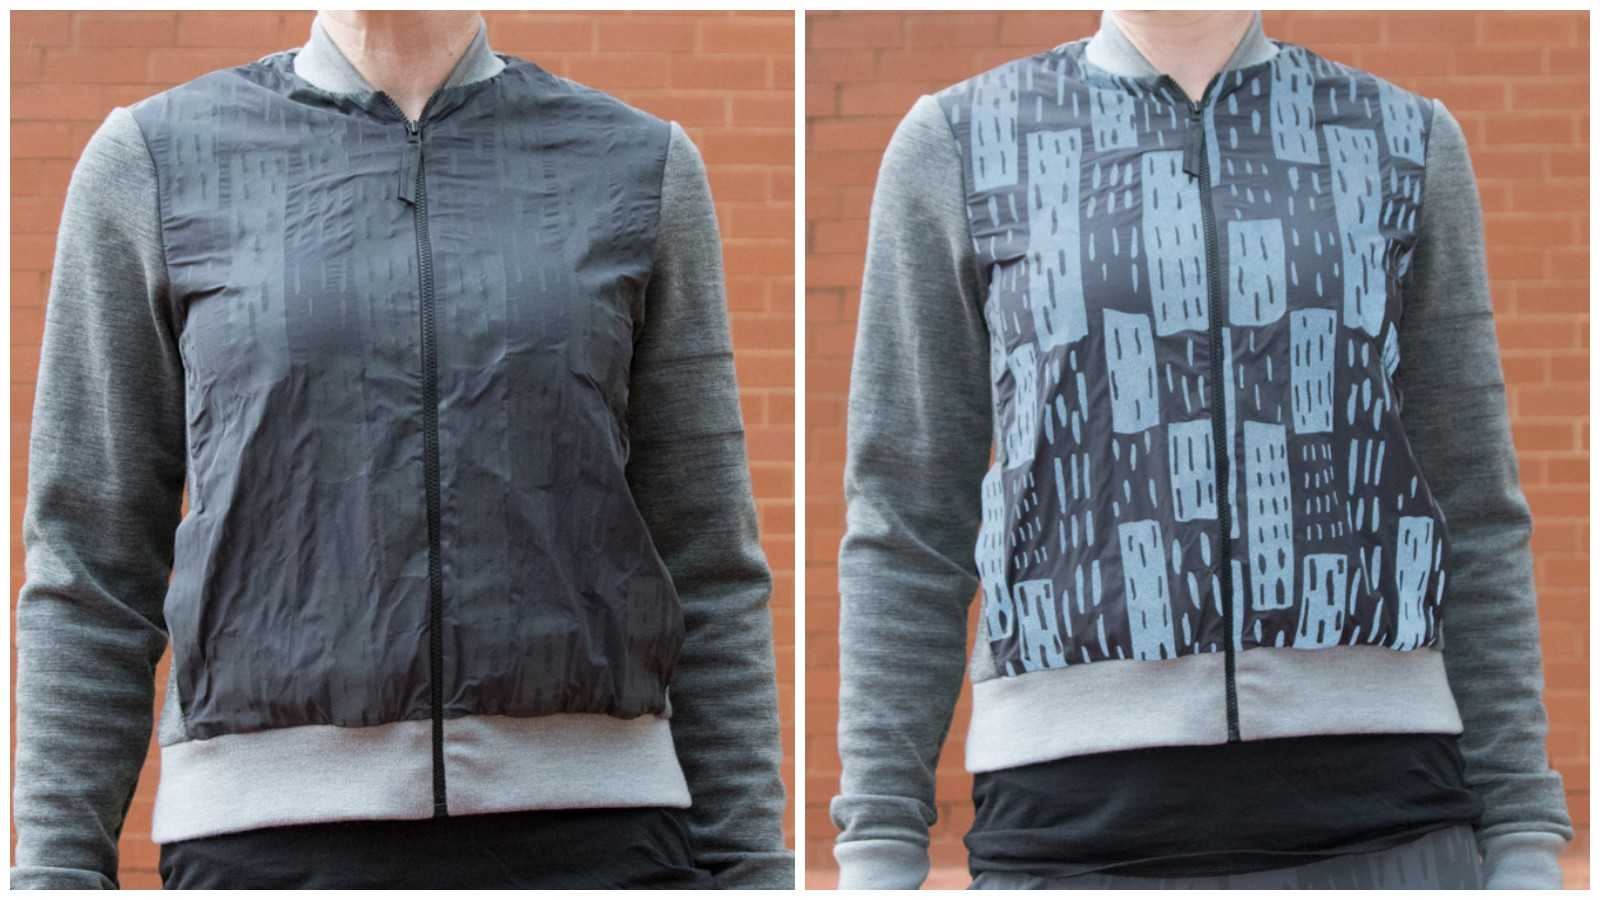 The front panel of the Printed Bomber reflects light